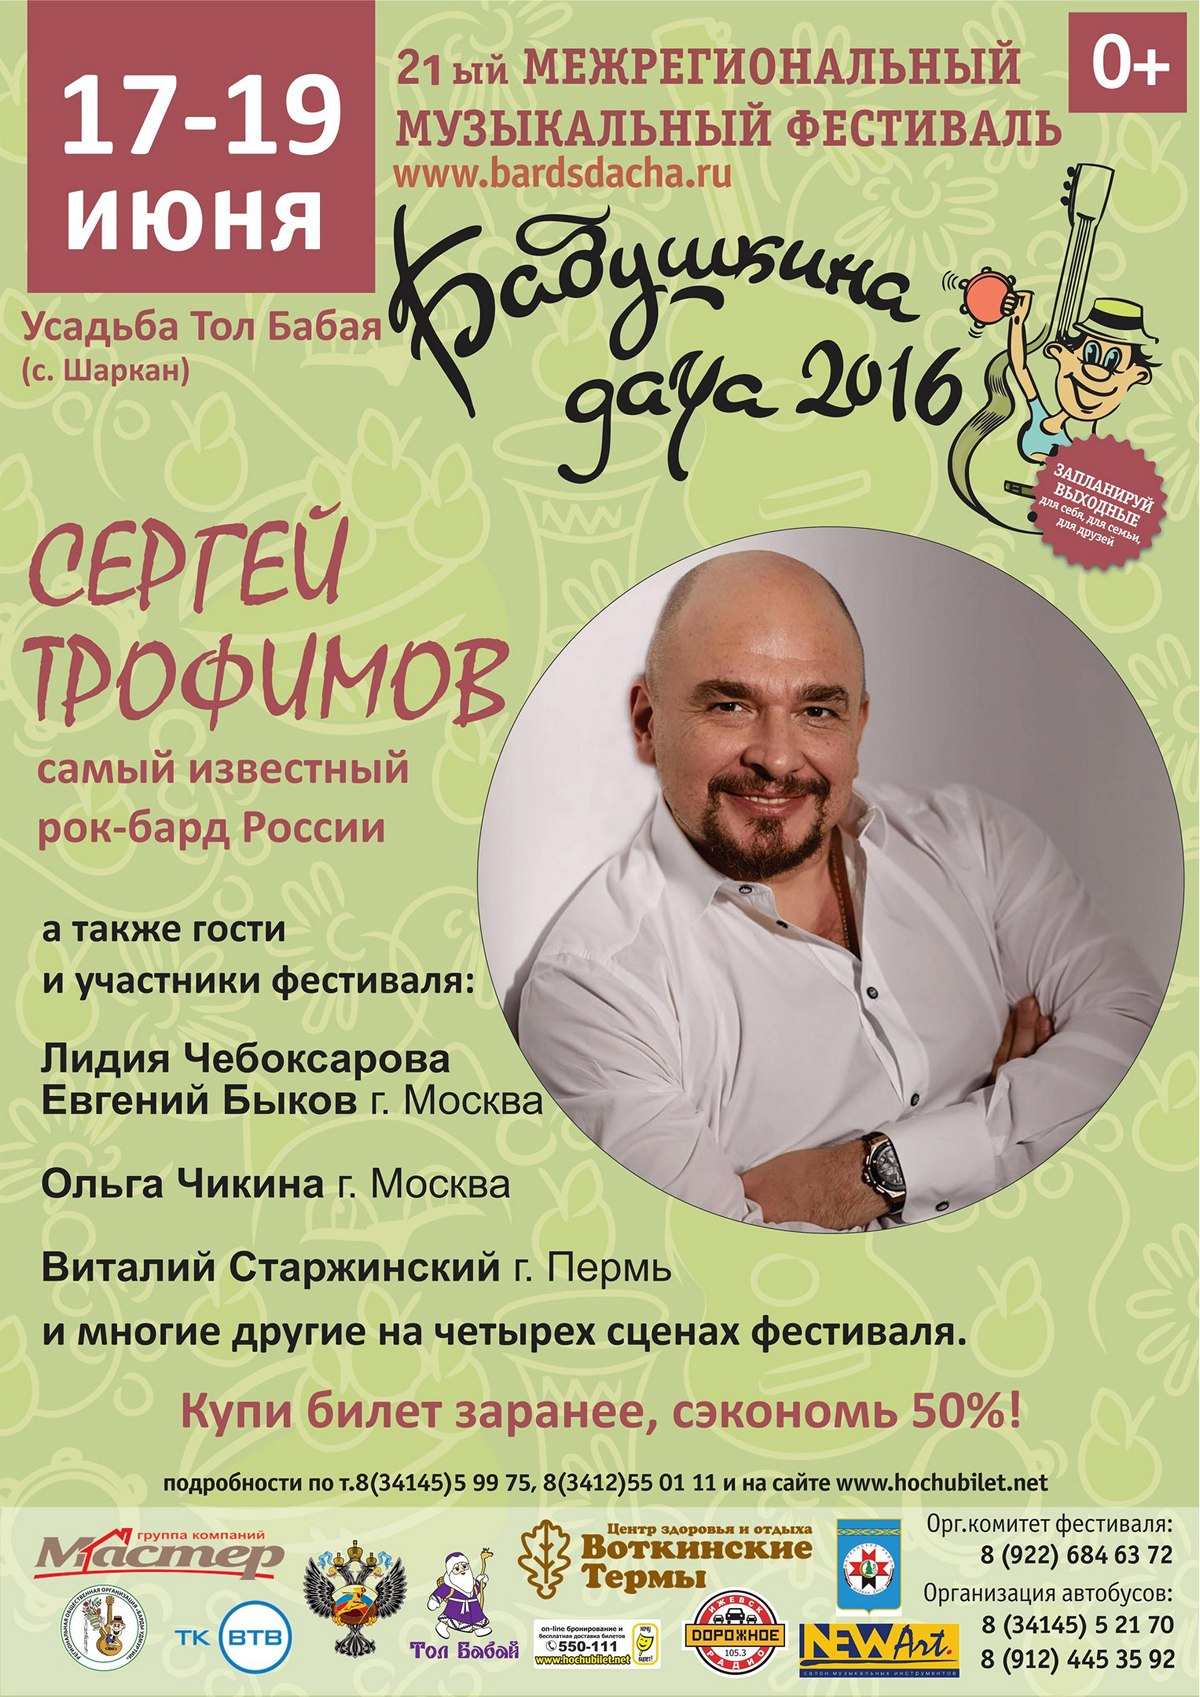 BD2016 Бабушкина дача 2016 в усадьбе Тол Бабая